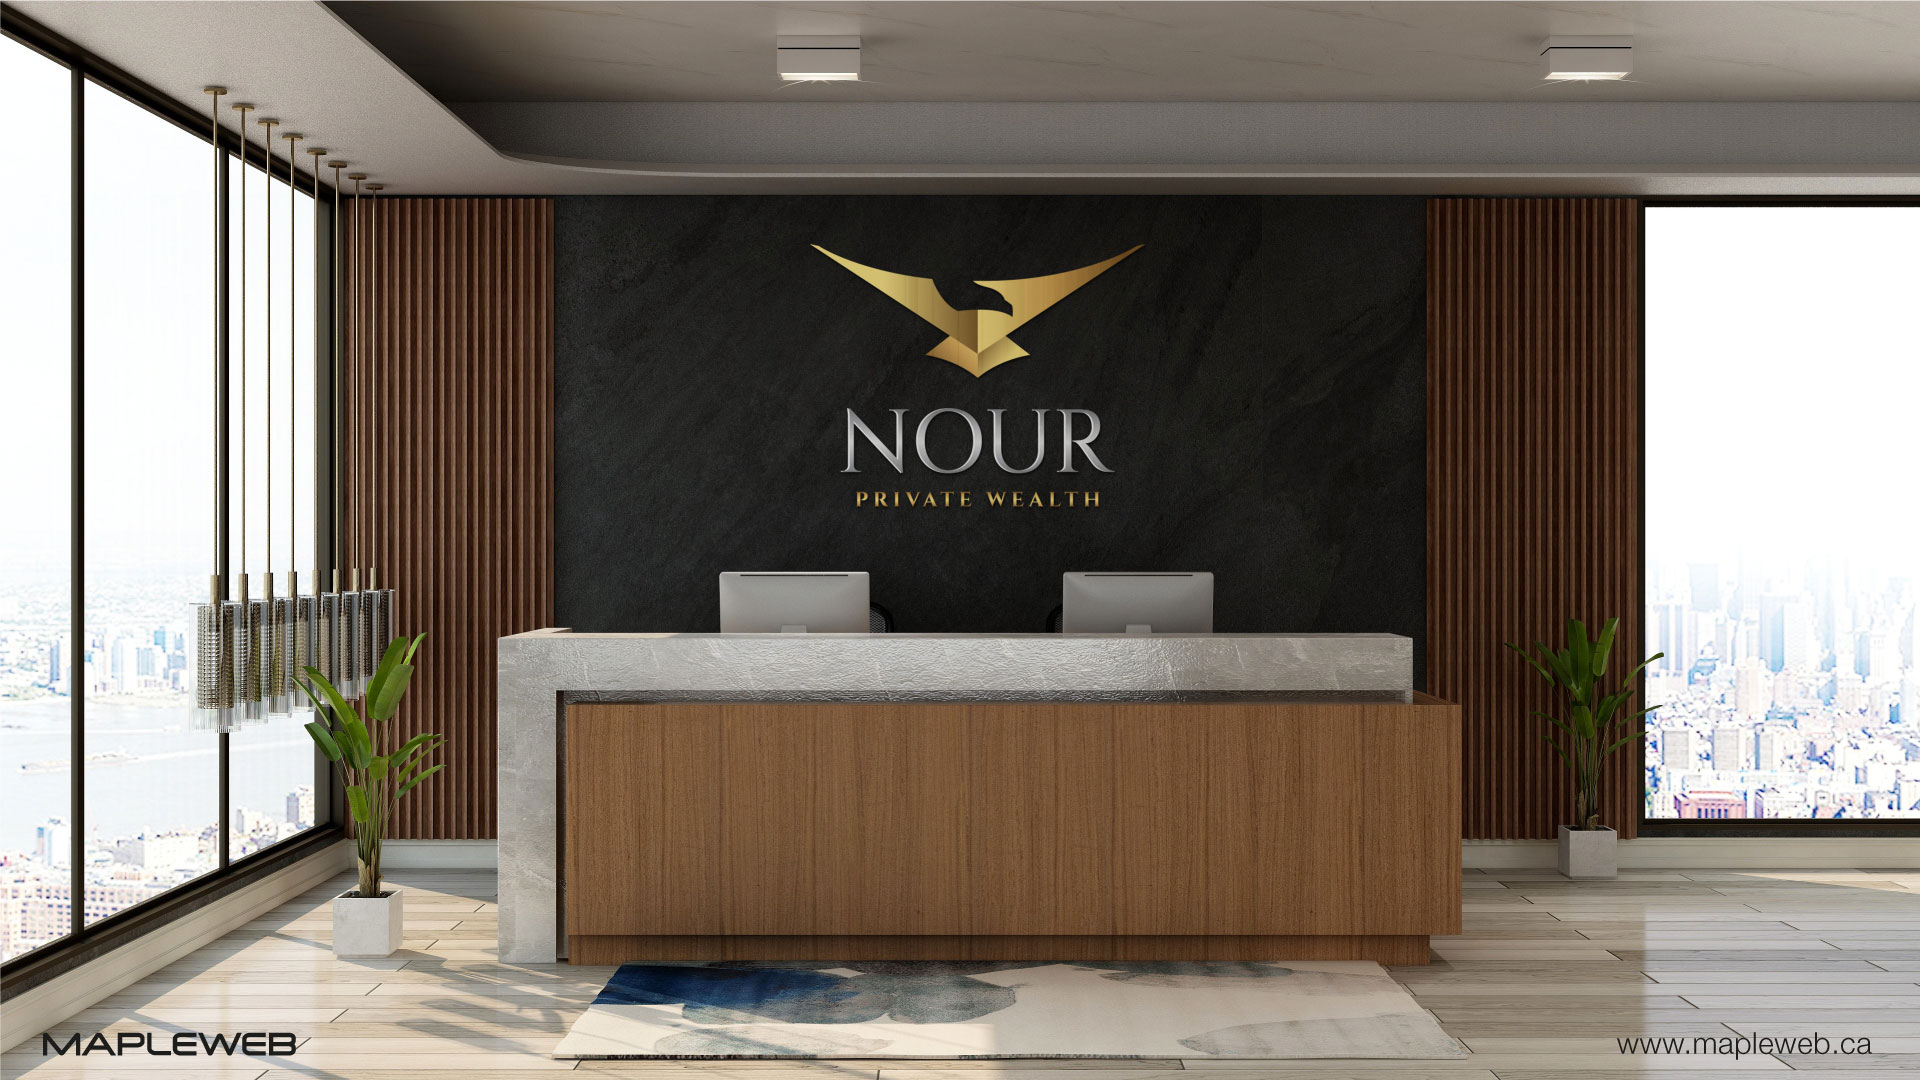 nour-private-wealth-brand-logo-design-by-mapleweb-vancouver-canada-reception-mock